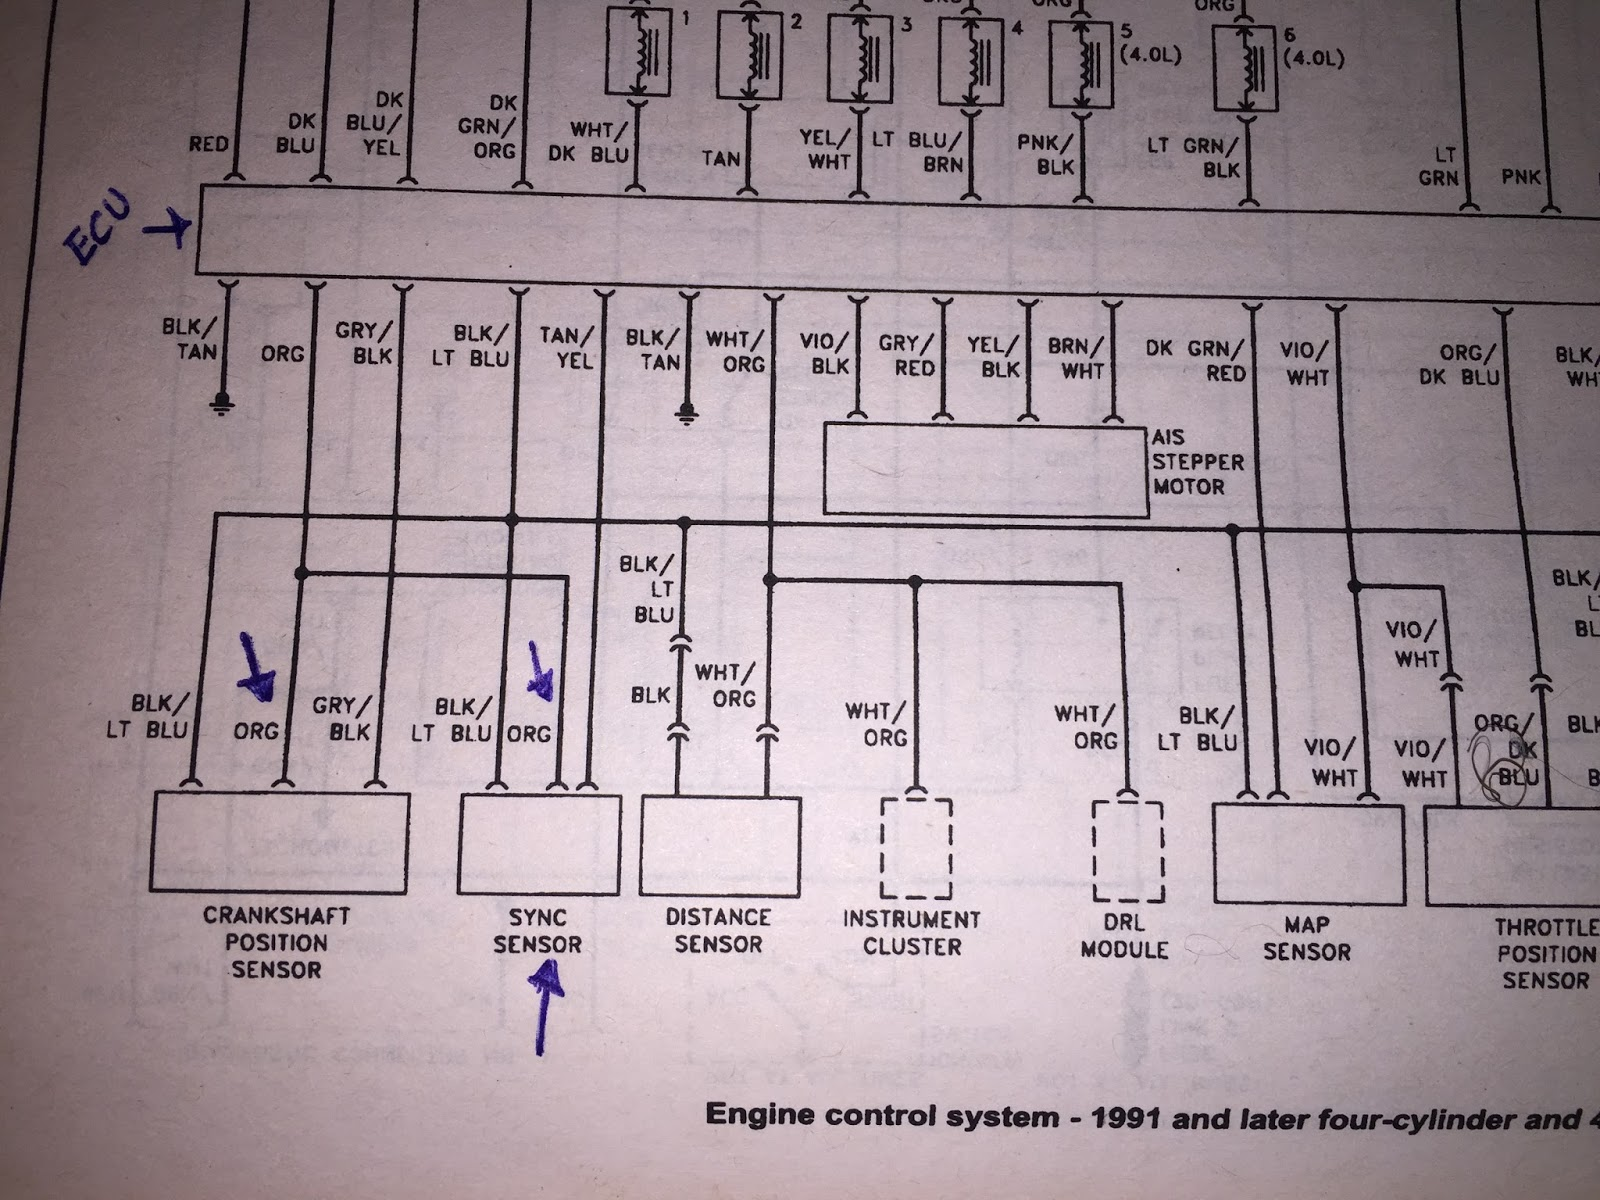 hight resolution of 1991 xj crank no start cps wiring bad ground jeepforum comhere is a copy